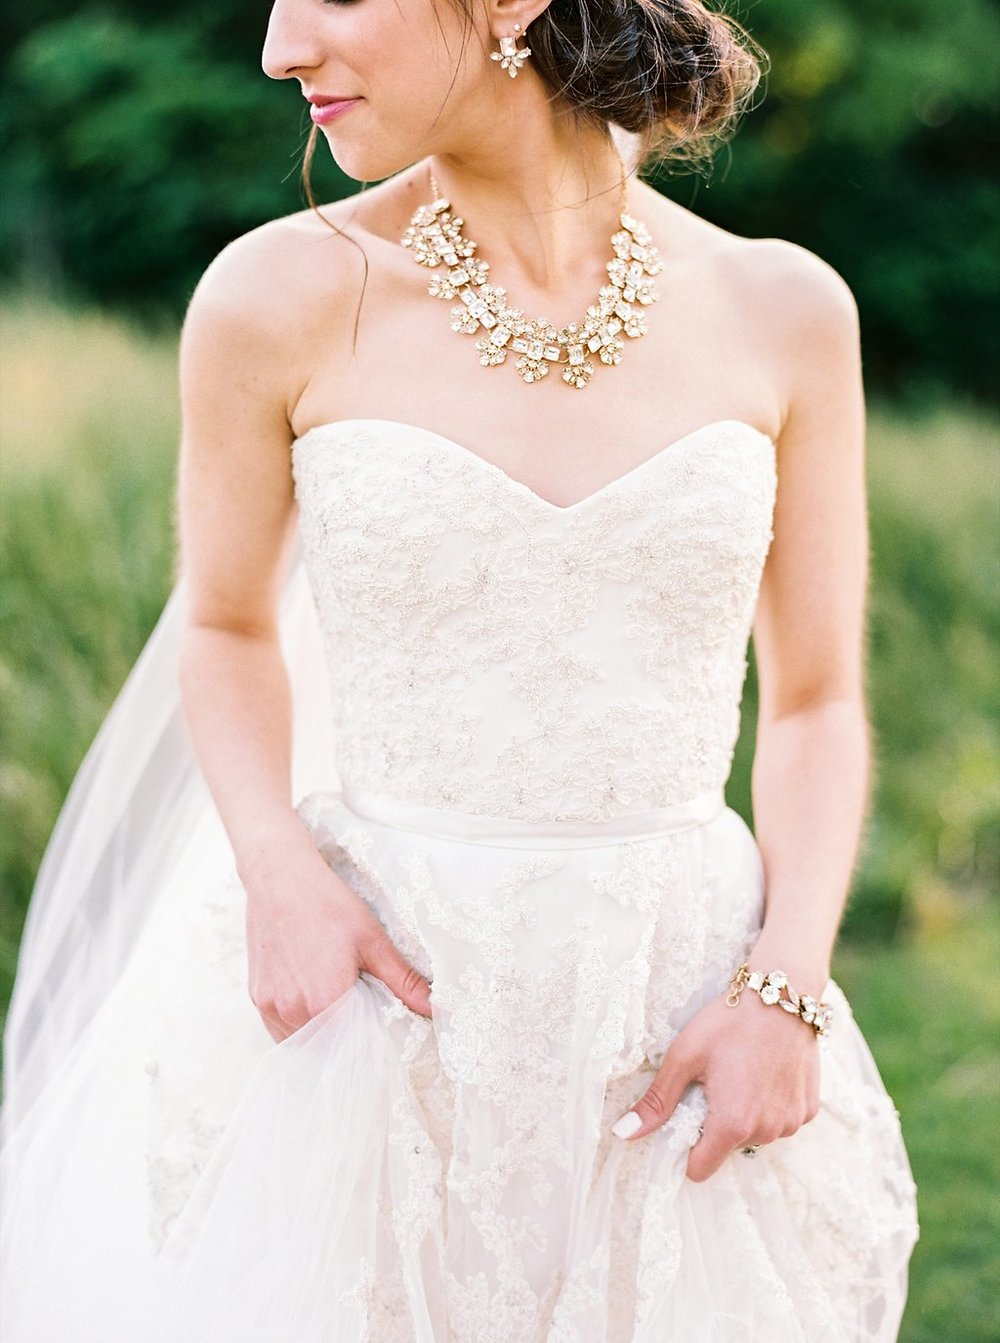 Southern Bride in Floral Lace and Tulle Reem Acra Gown with Kate Spade Crystal Arches Necklace and Low Messy Bun | Blush and Navy Wedding with Fuchsia, French Blue and Gold Accents | Simply Jessica Marie's Southern Wedding at Gettysvue Golf Course and Country Club in Knoxville Tennessee | Photo by Perry Vaile Photography